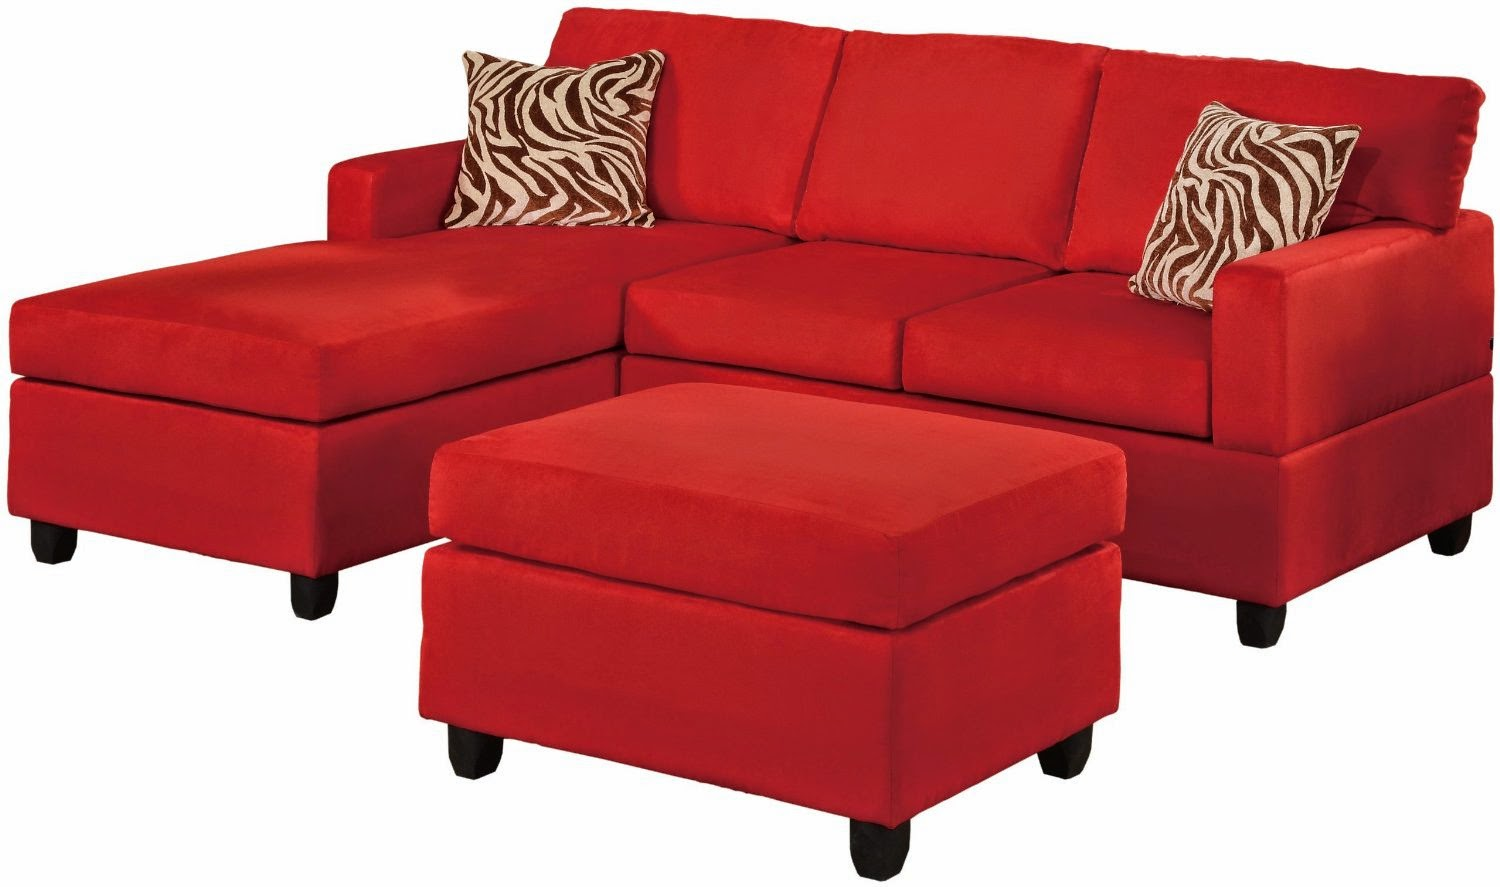 Red Couches | Red Sofa Furniture Raya Furniture